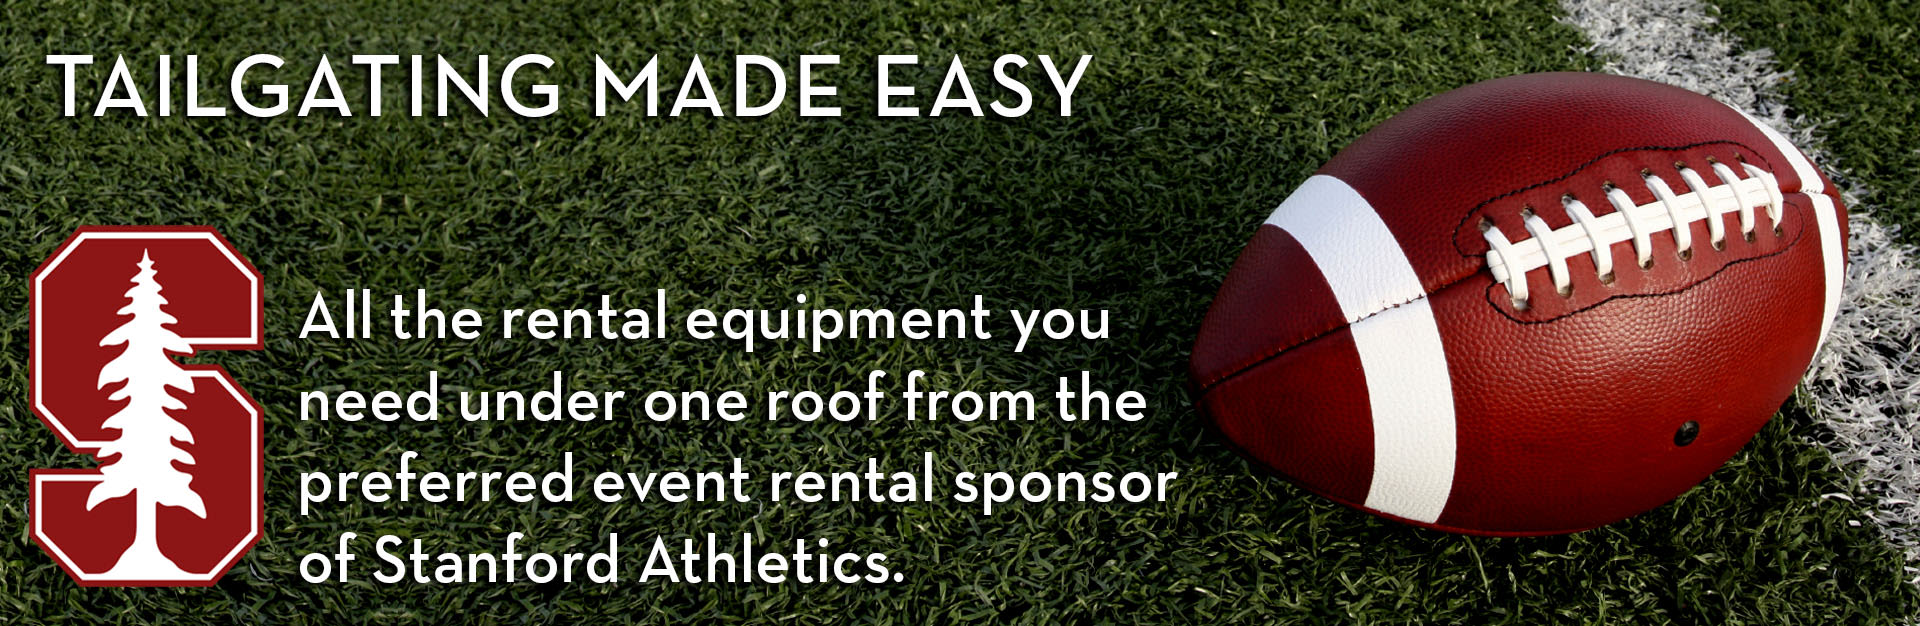 Tailgating made easy. All the renal equipment you need under one roof from the preferred event rental sponsor of Stanford Athletics.